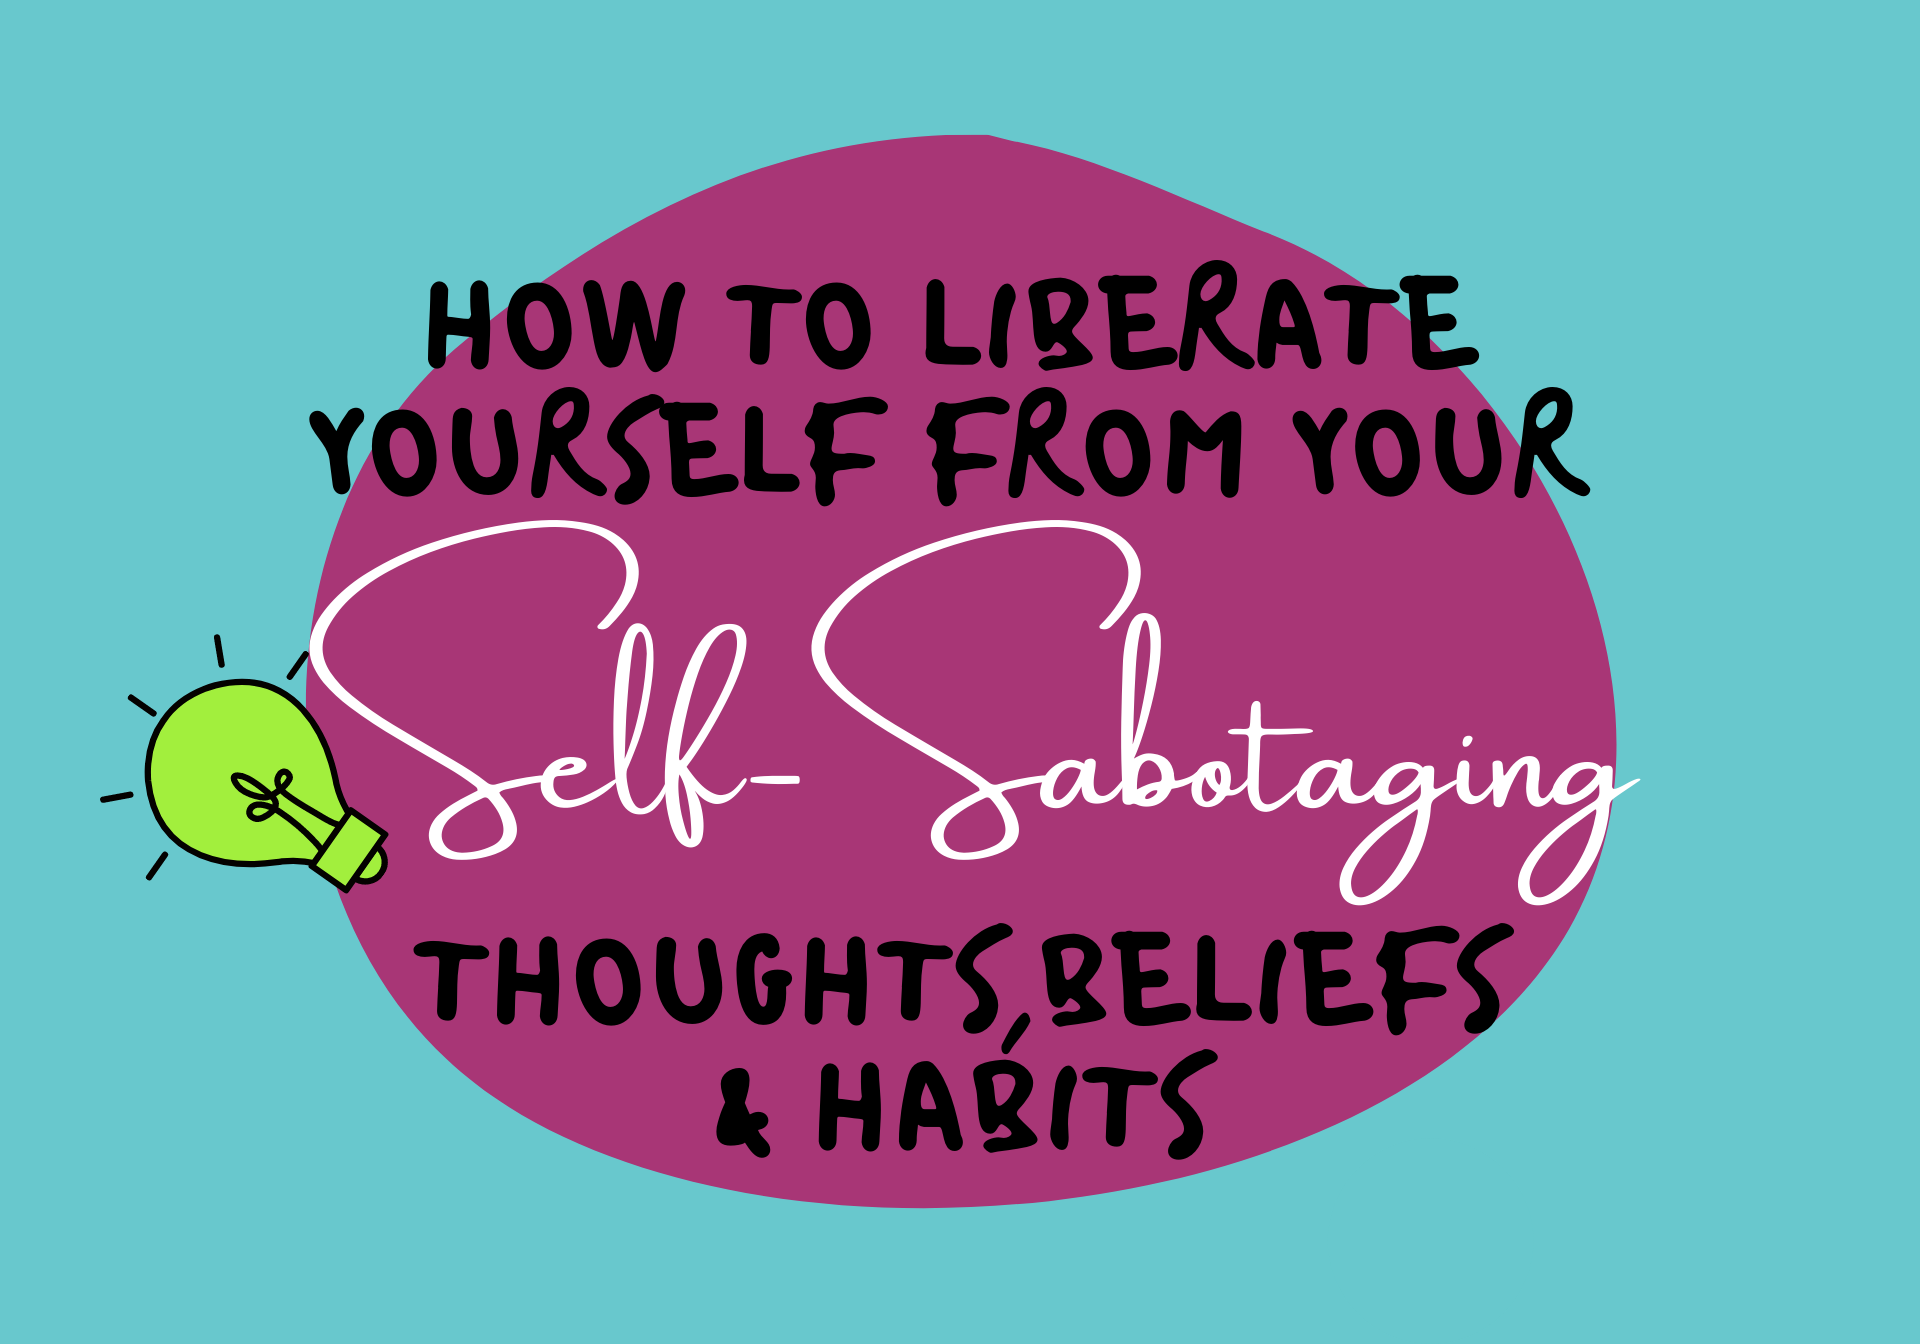 How to Liberate Yourself From Your Self-Sabotaging Beliefs, Thoughts and Habits